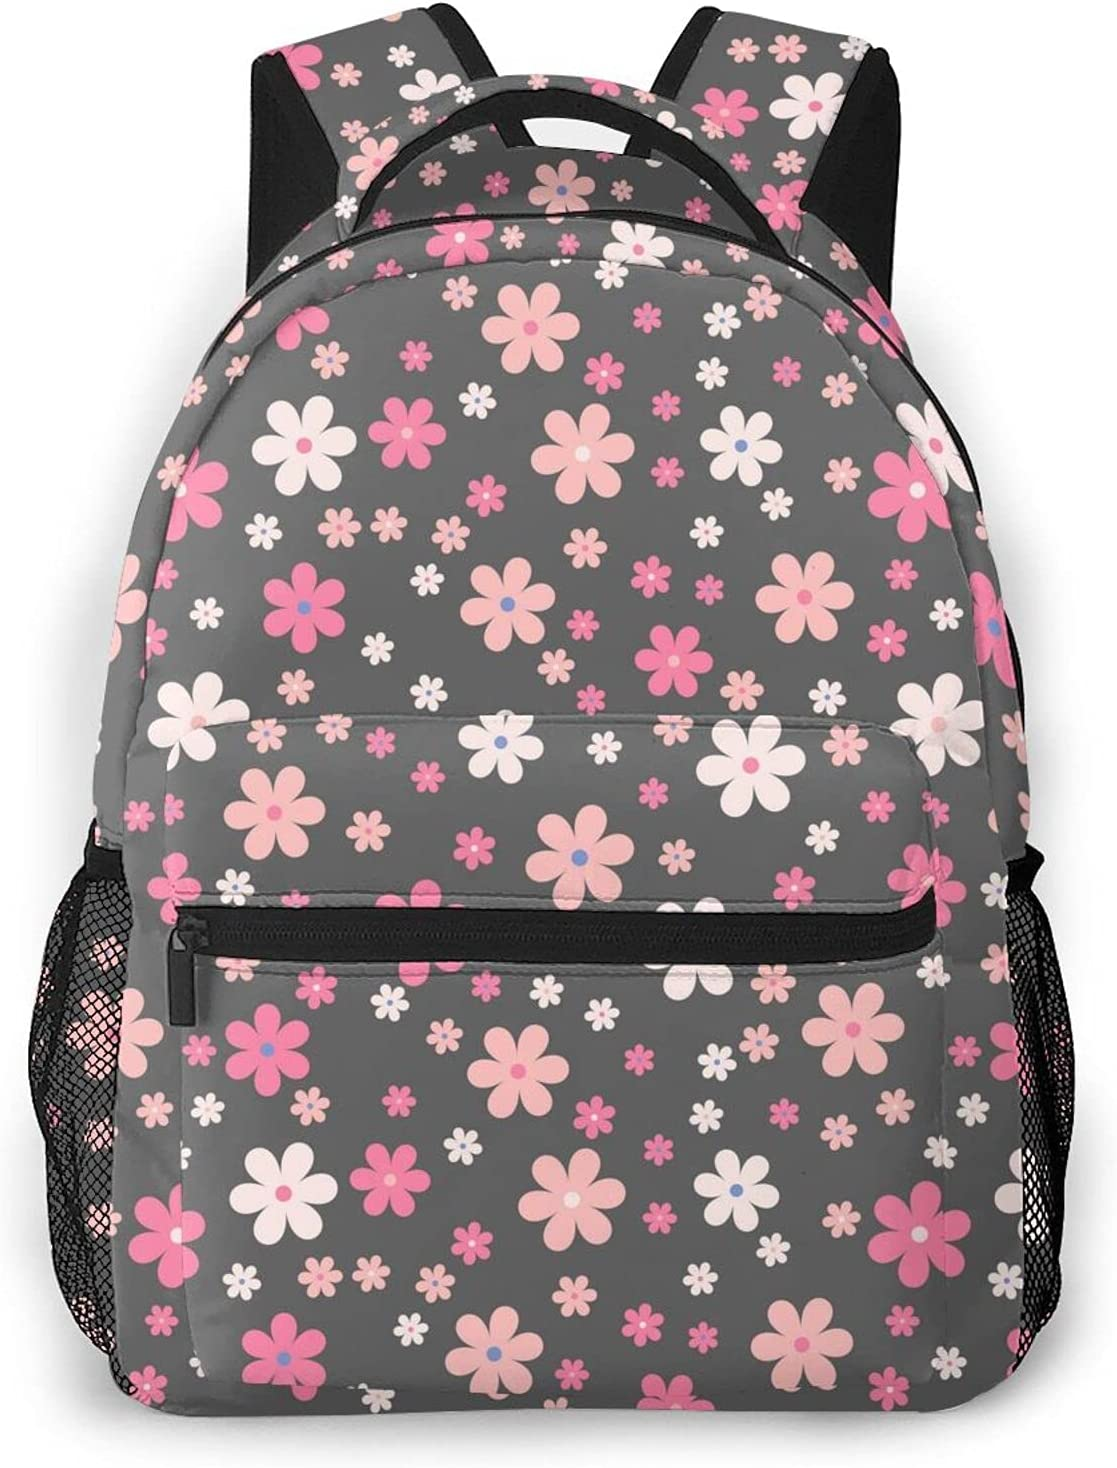 Pink Floral Print Custom Unique Casual Backpack Trave Bag All stores are sold School Selling rankings